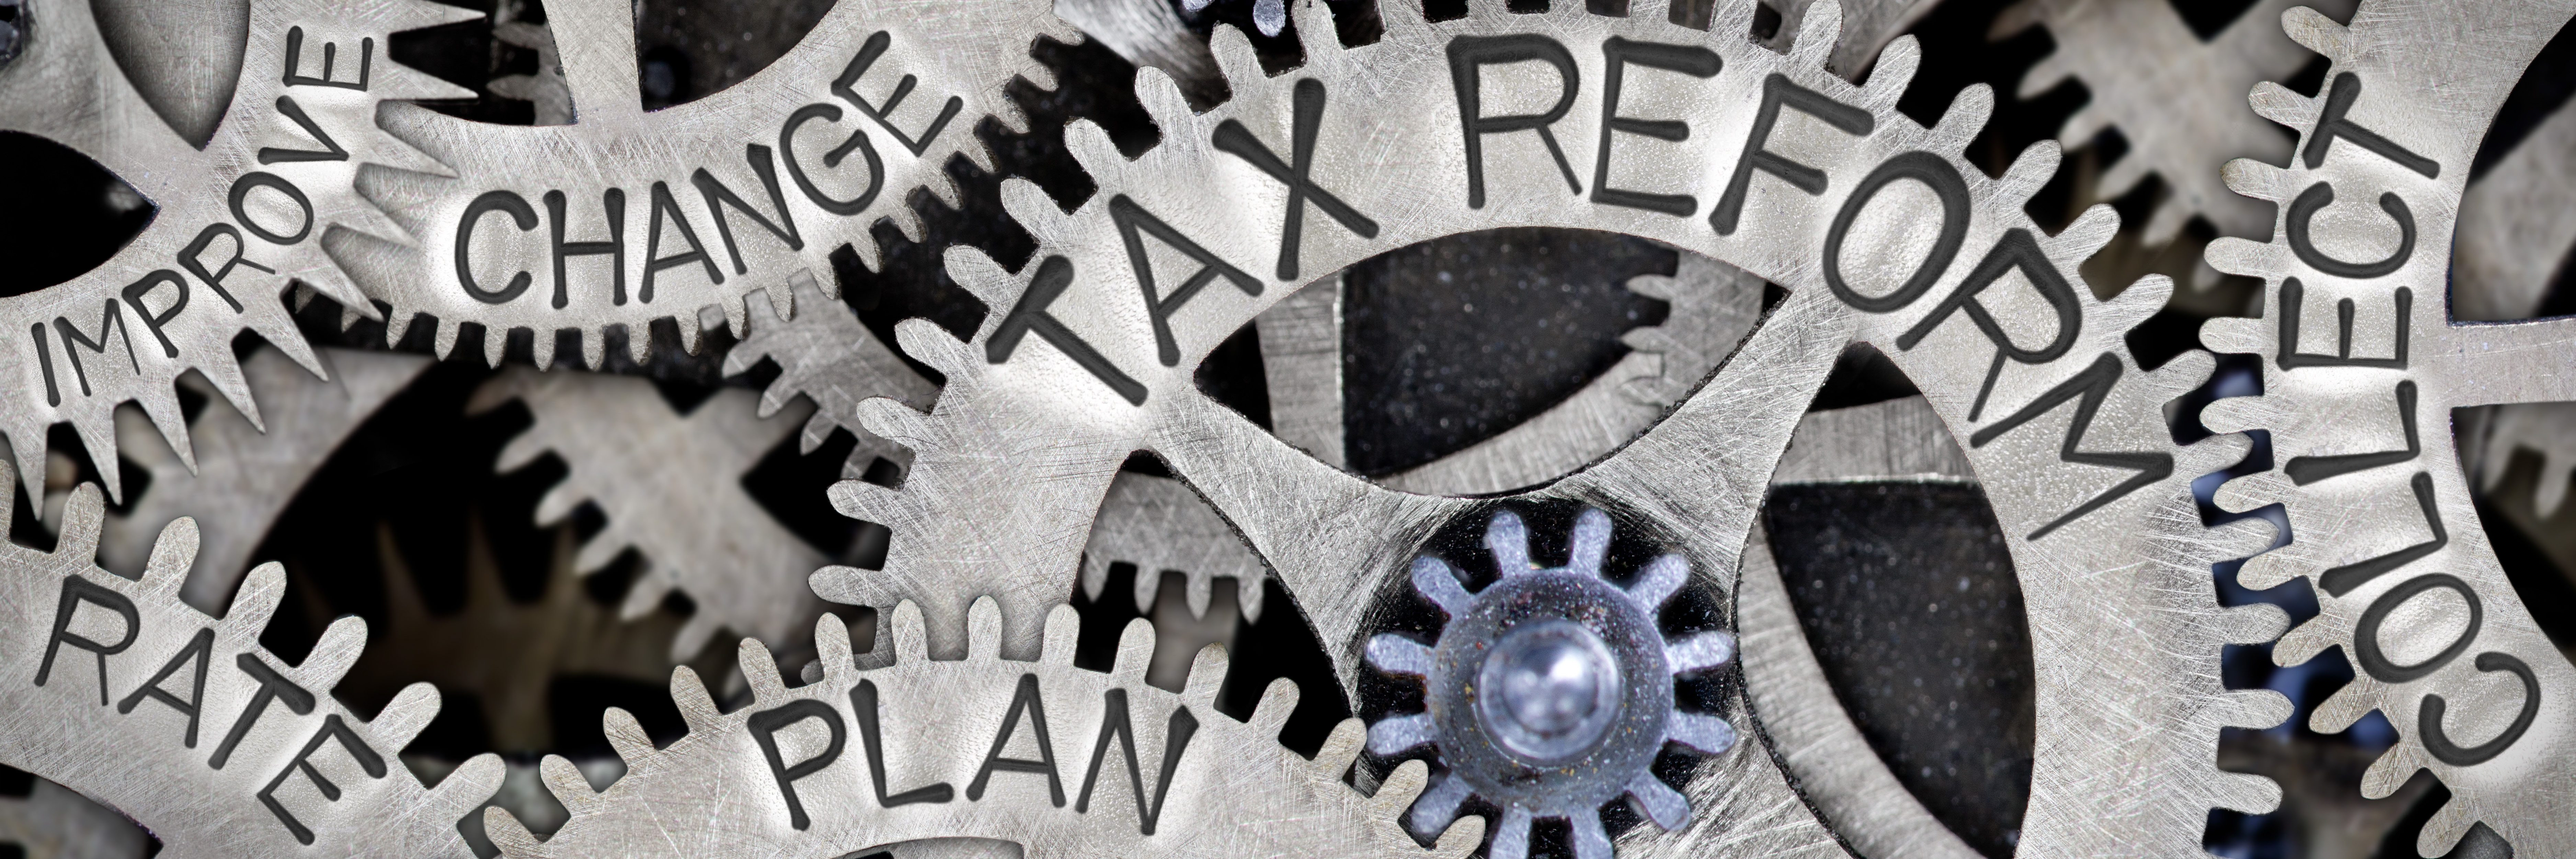 In the News: China Raises Individual Income Tax Threshold; Introduces New E-commerce Law